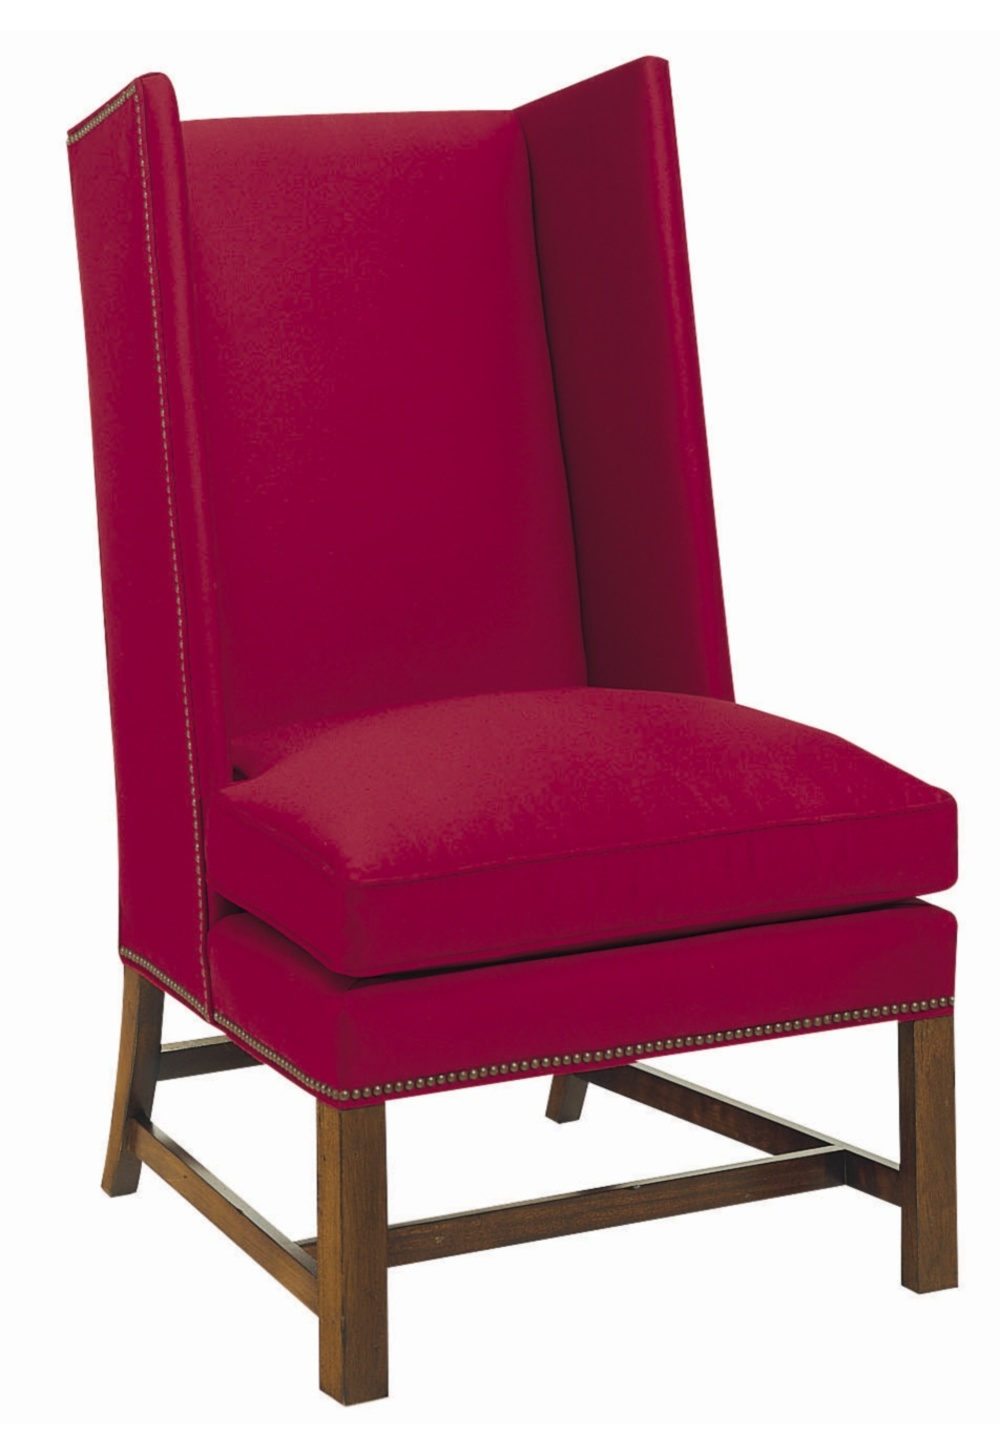 Hickory Chair - Farm Wing Chair